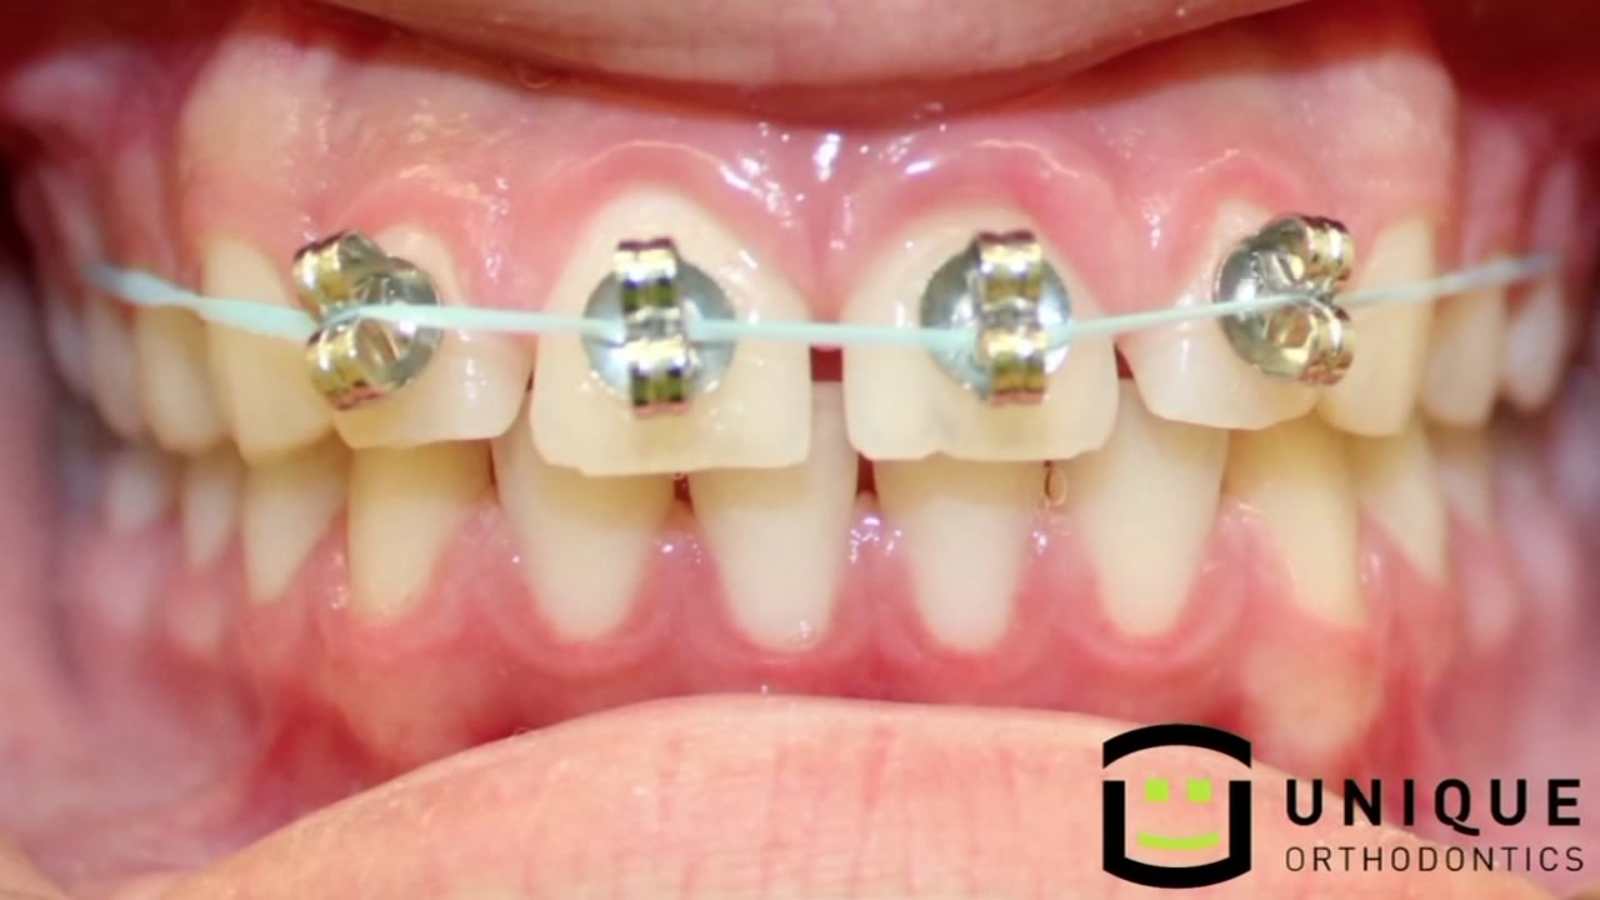 Diy Braces Are A Thing But Not A Good One Abc13 Com